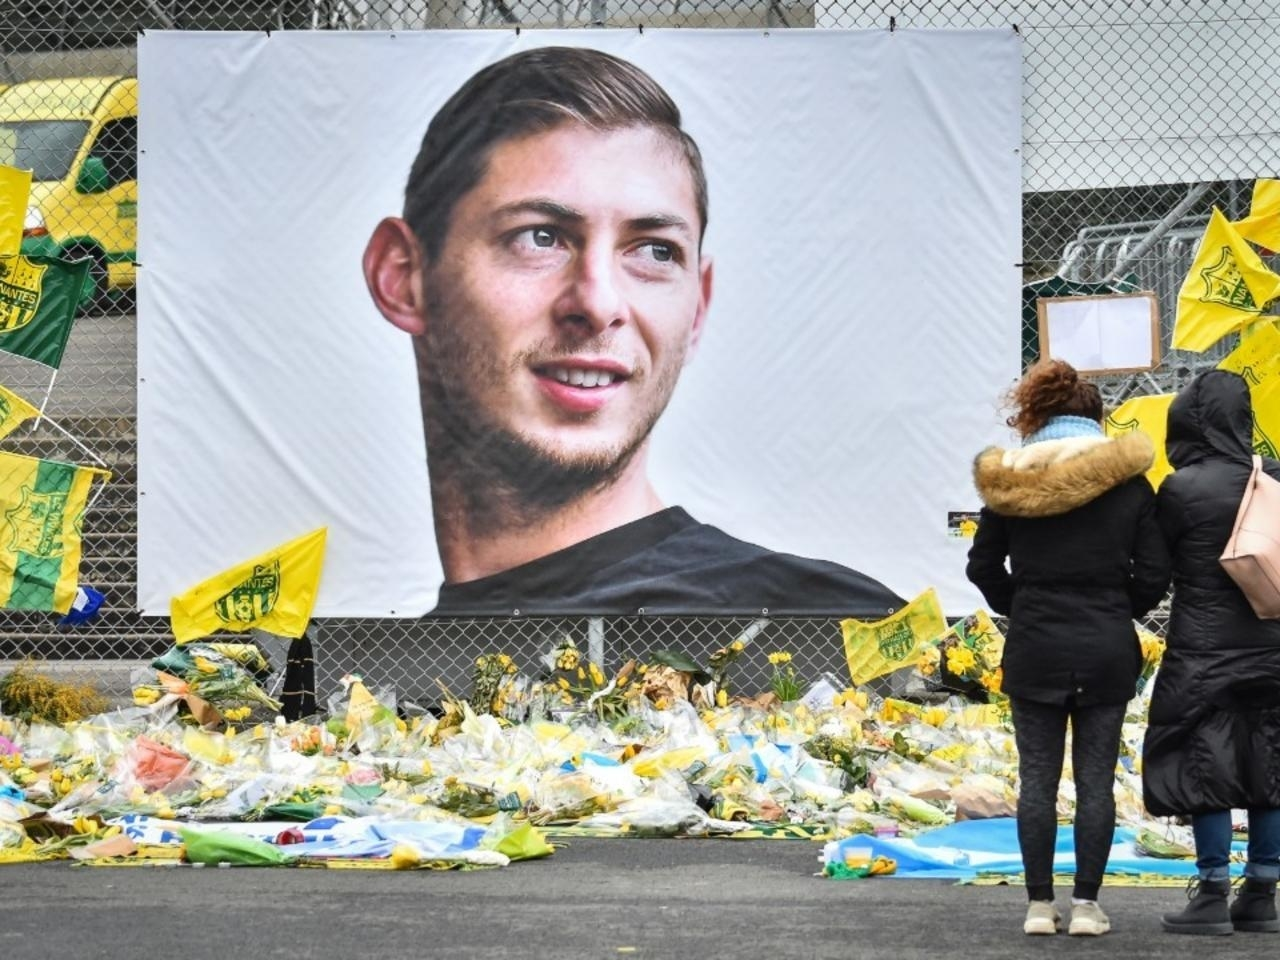 'It is a tragedy we don't know the truth': Emiliano Sala's family demand answers two years on from player's death